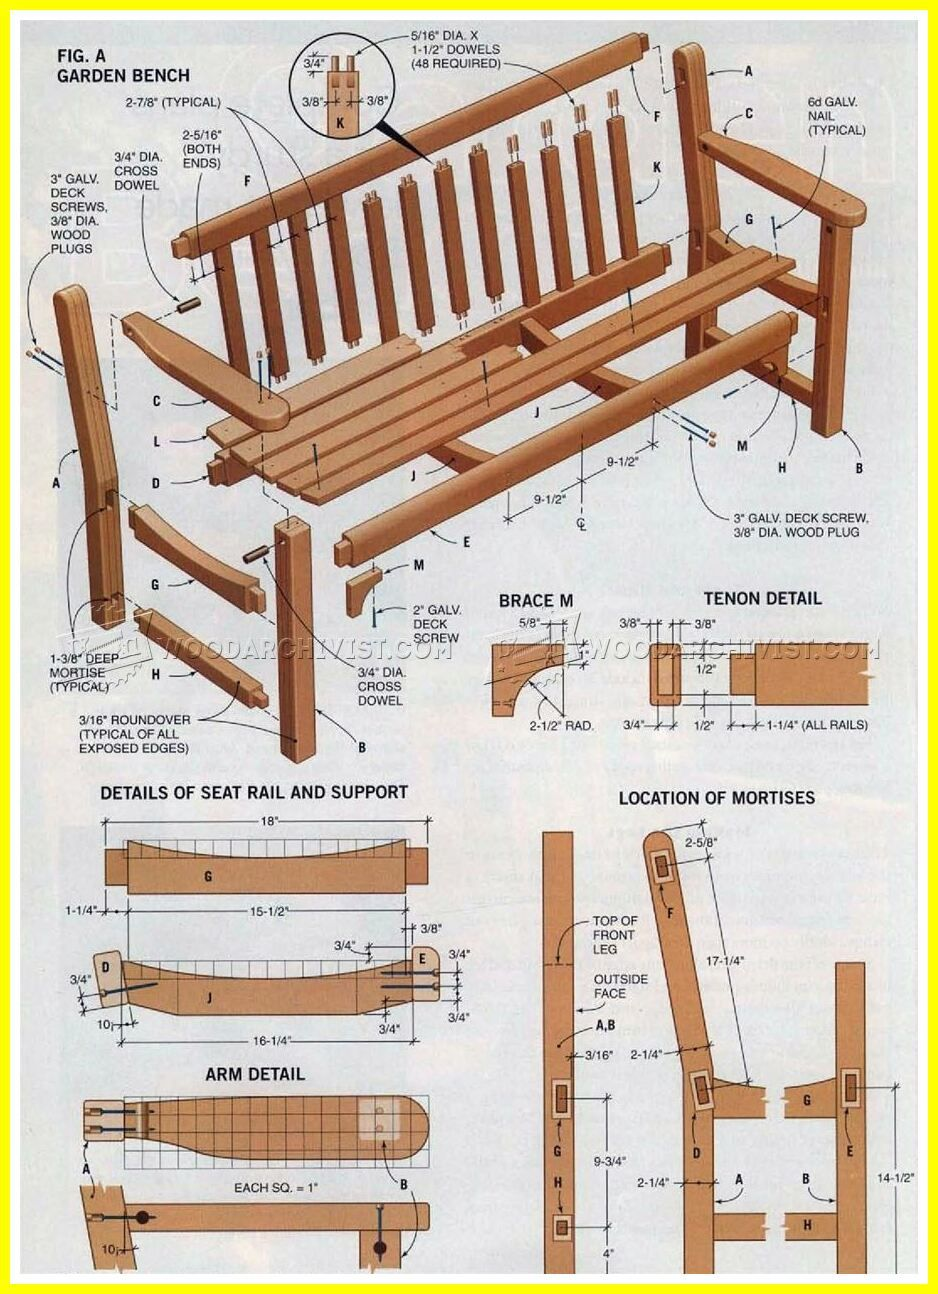 78 Reference Of Garden Bench Design Pdf In 2020 Outdoor Furniture Plans Garden Bench Plans Wood Furniture Plans